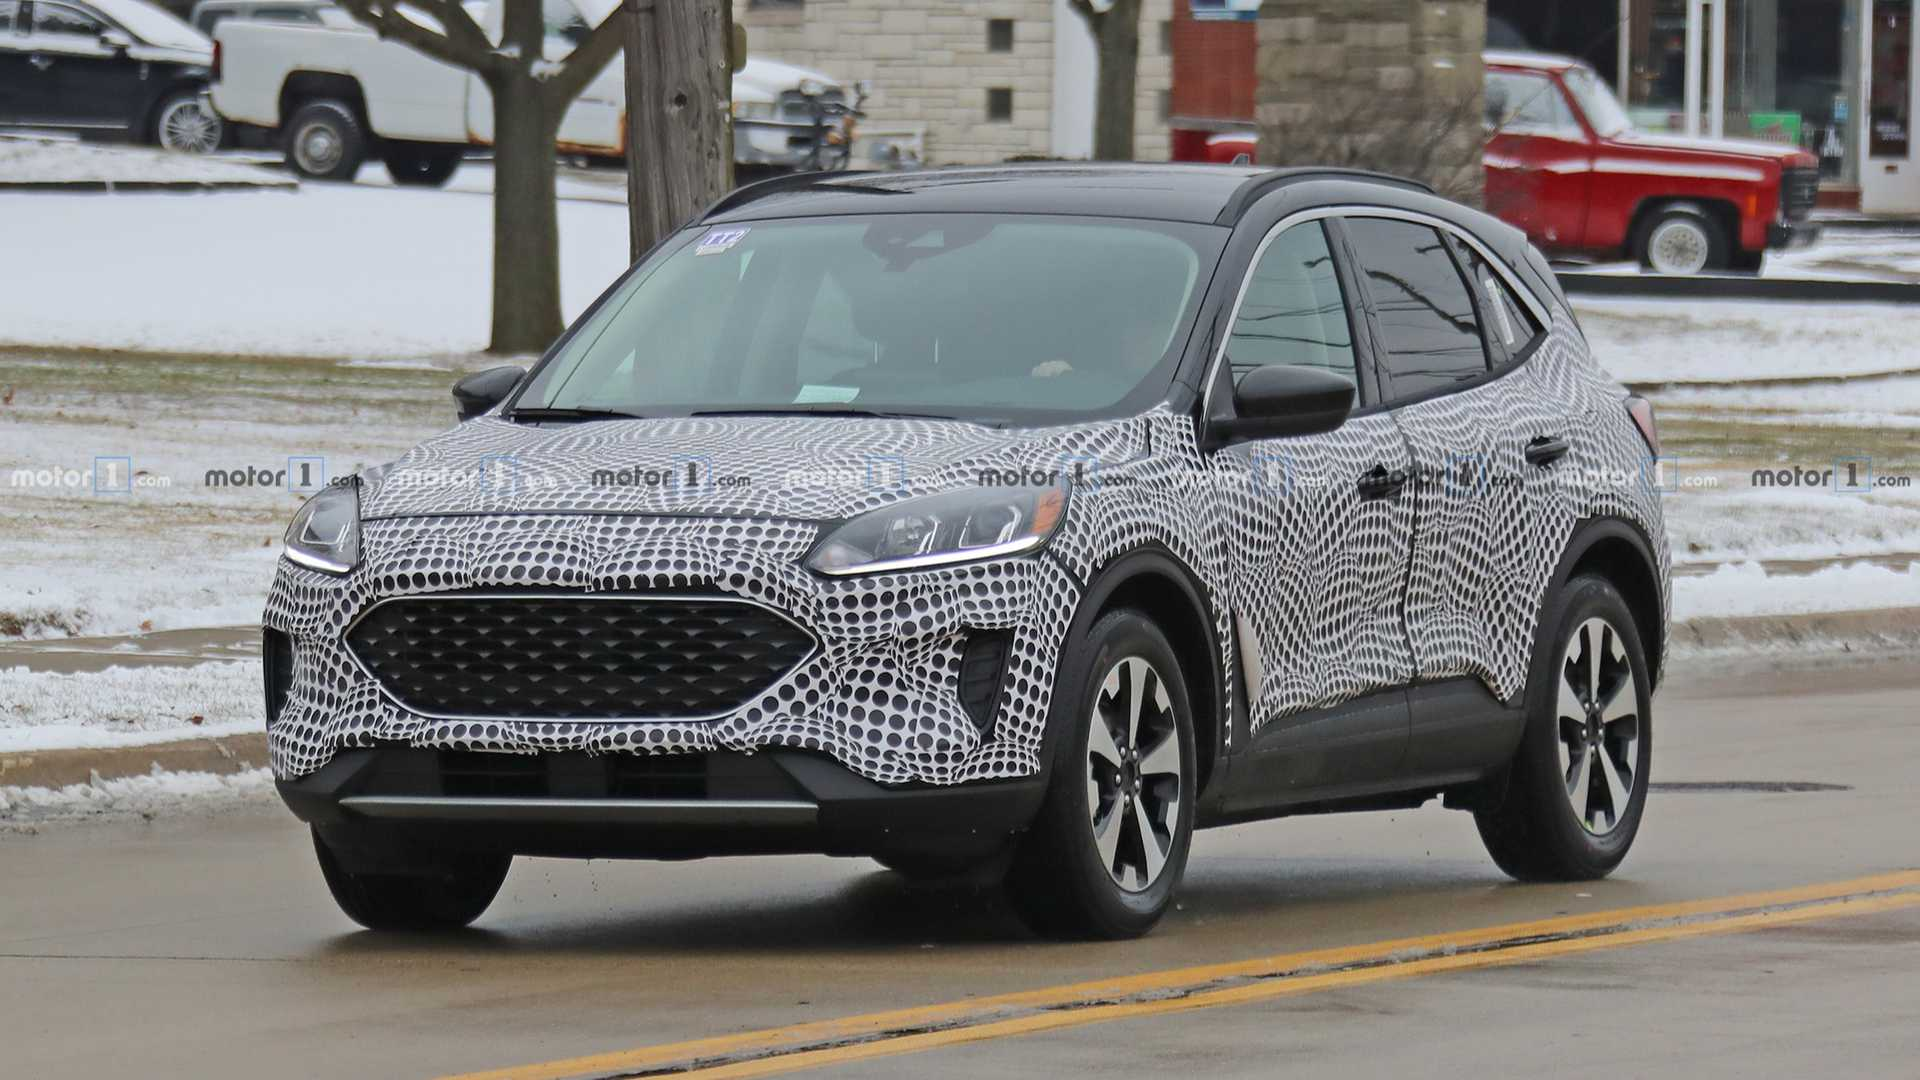 2020 Ford Escape Spied Inside And Out Hybrid Confirmed